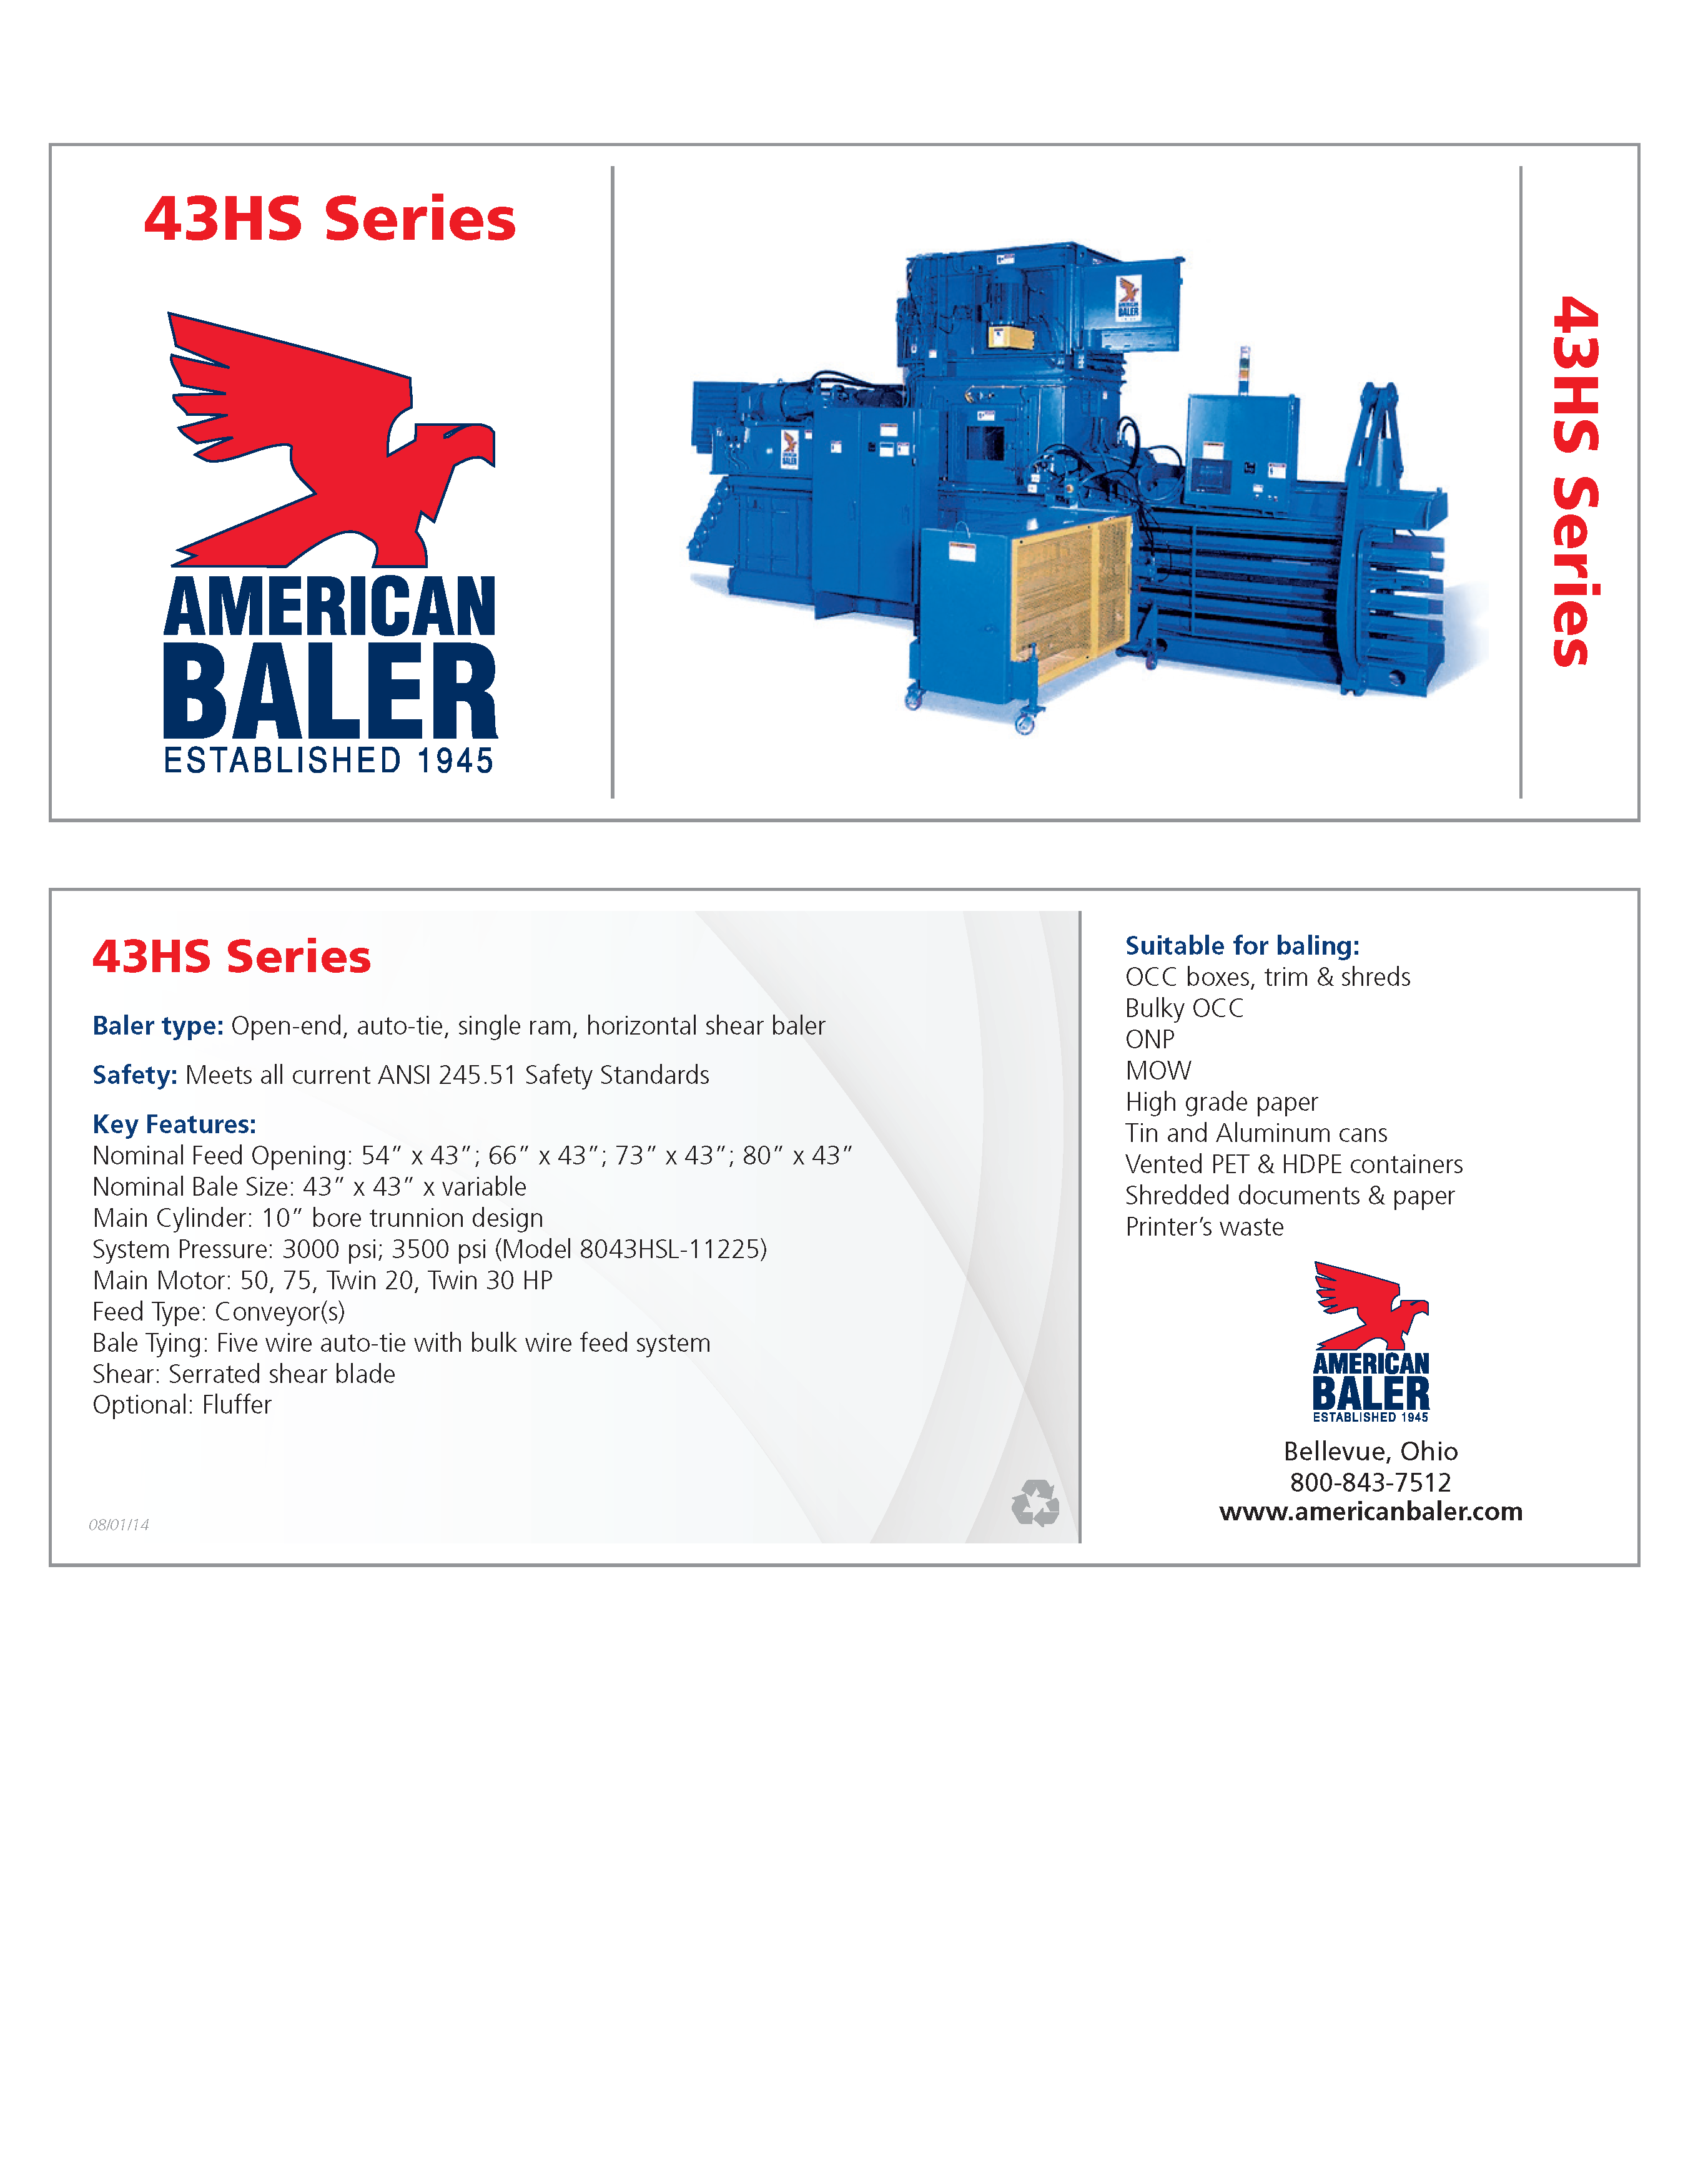 Learn more about the 43HS Series Baler in the American Baler Brochure.